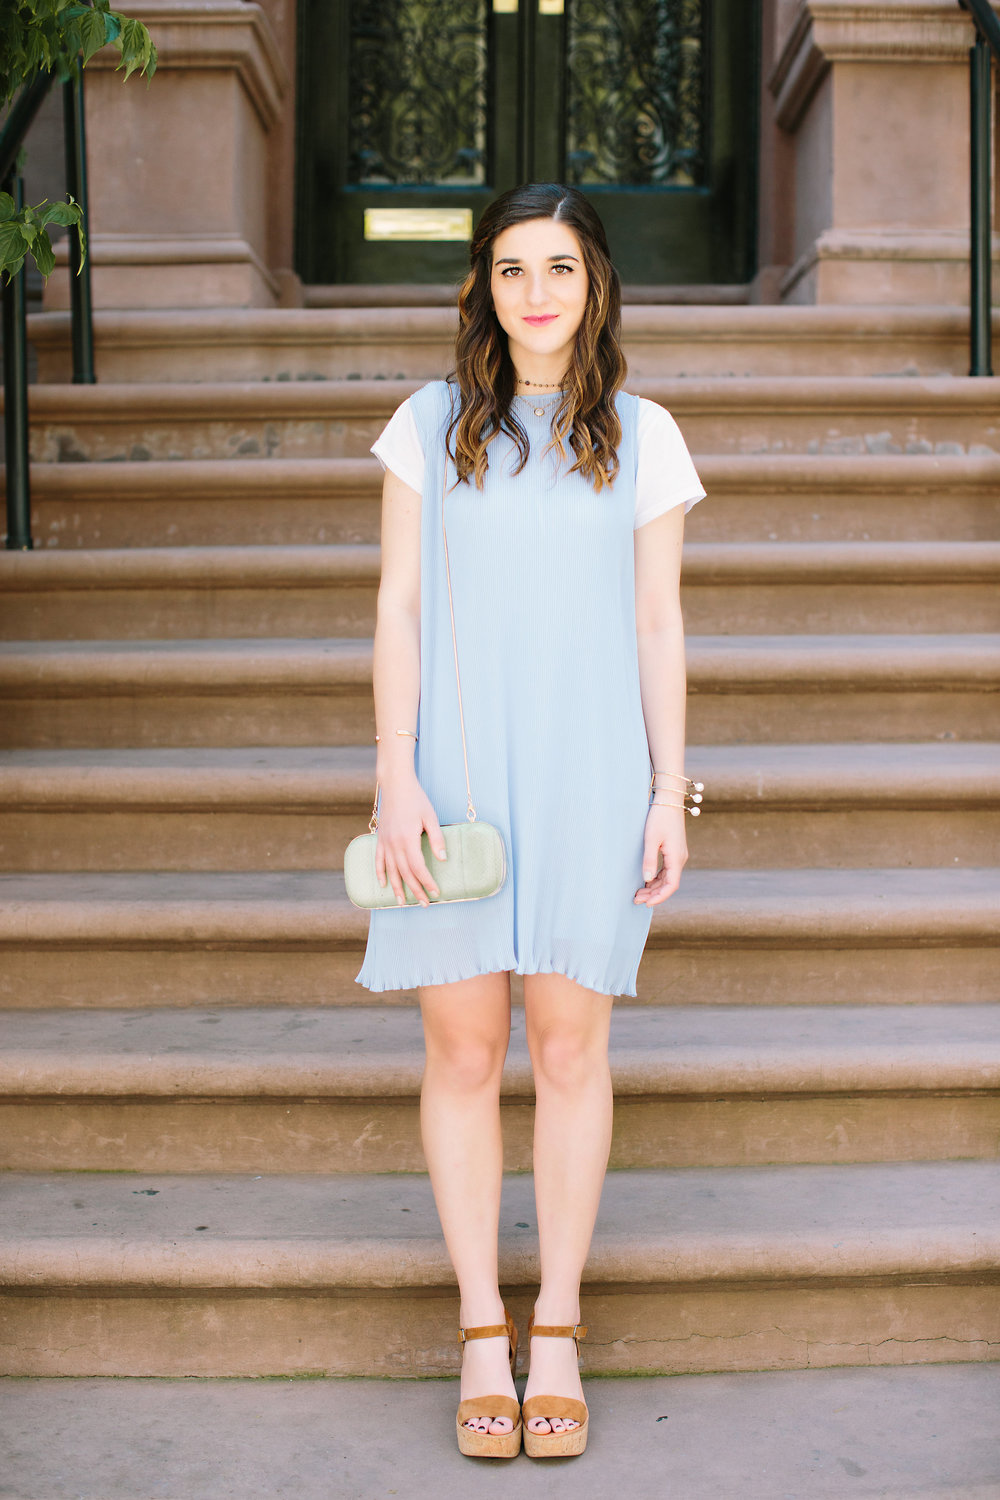 Pastel Blue Pleated Dress Keepsake The Label Louboutins & Love Fashion Blog Esther Santer NYC Street Style Blogger Outfit OOTD Pretty Photoshoot Upper East Side Dolce Vita Wedges Clutch Club Monaco Gold Jewelry Women White Tee Shirt Inspo Summer Look.jpg